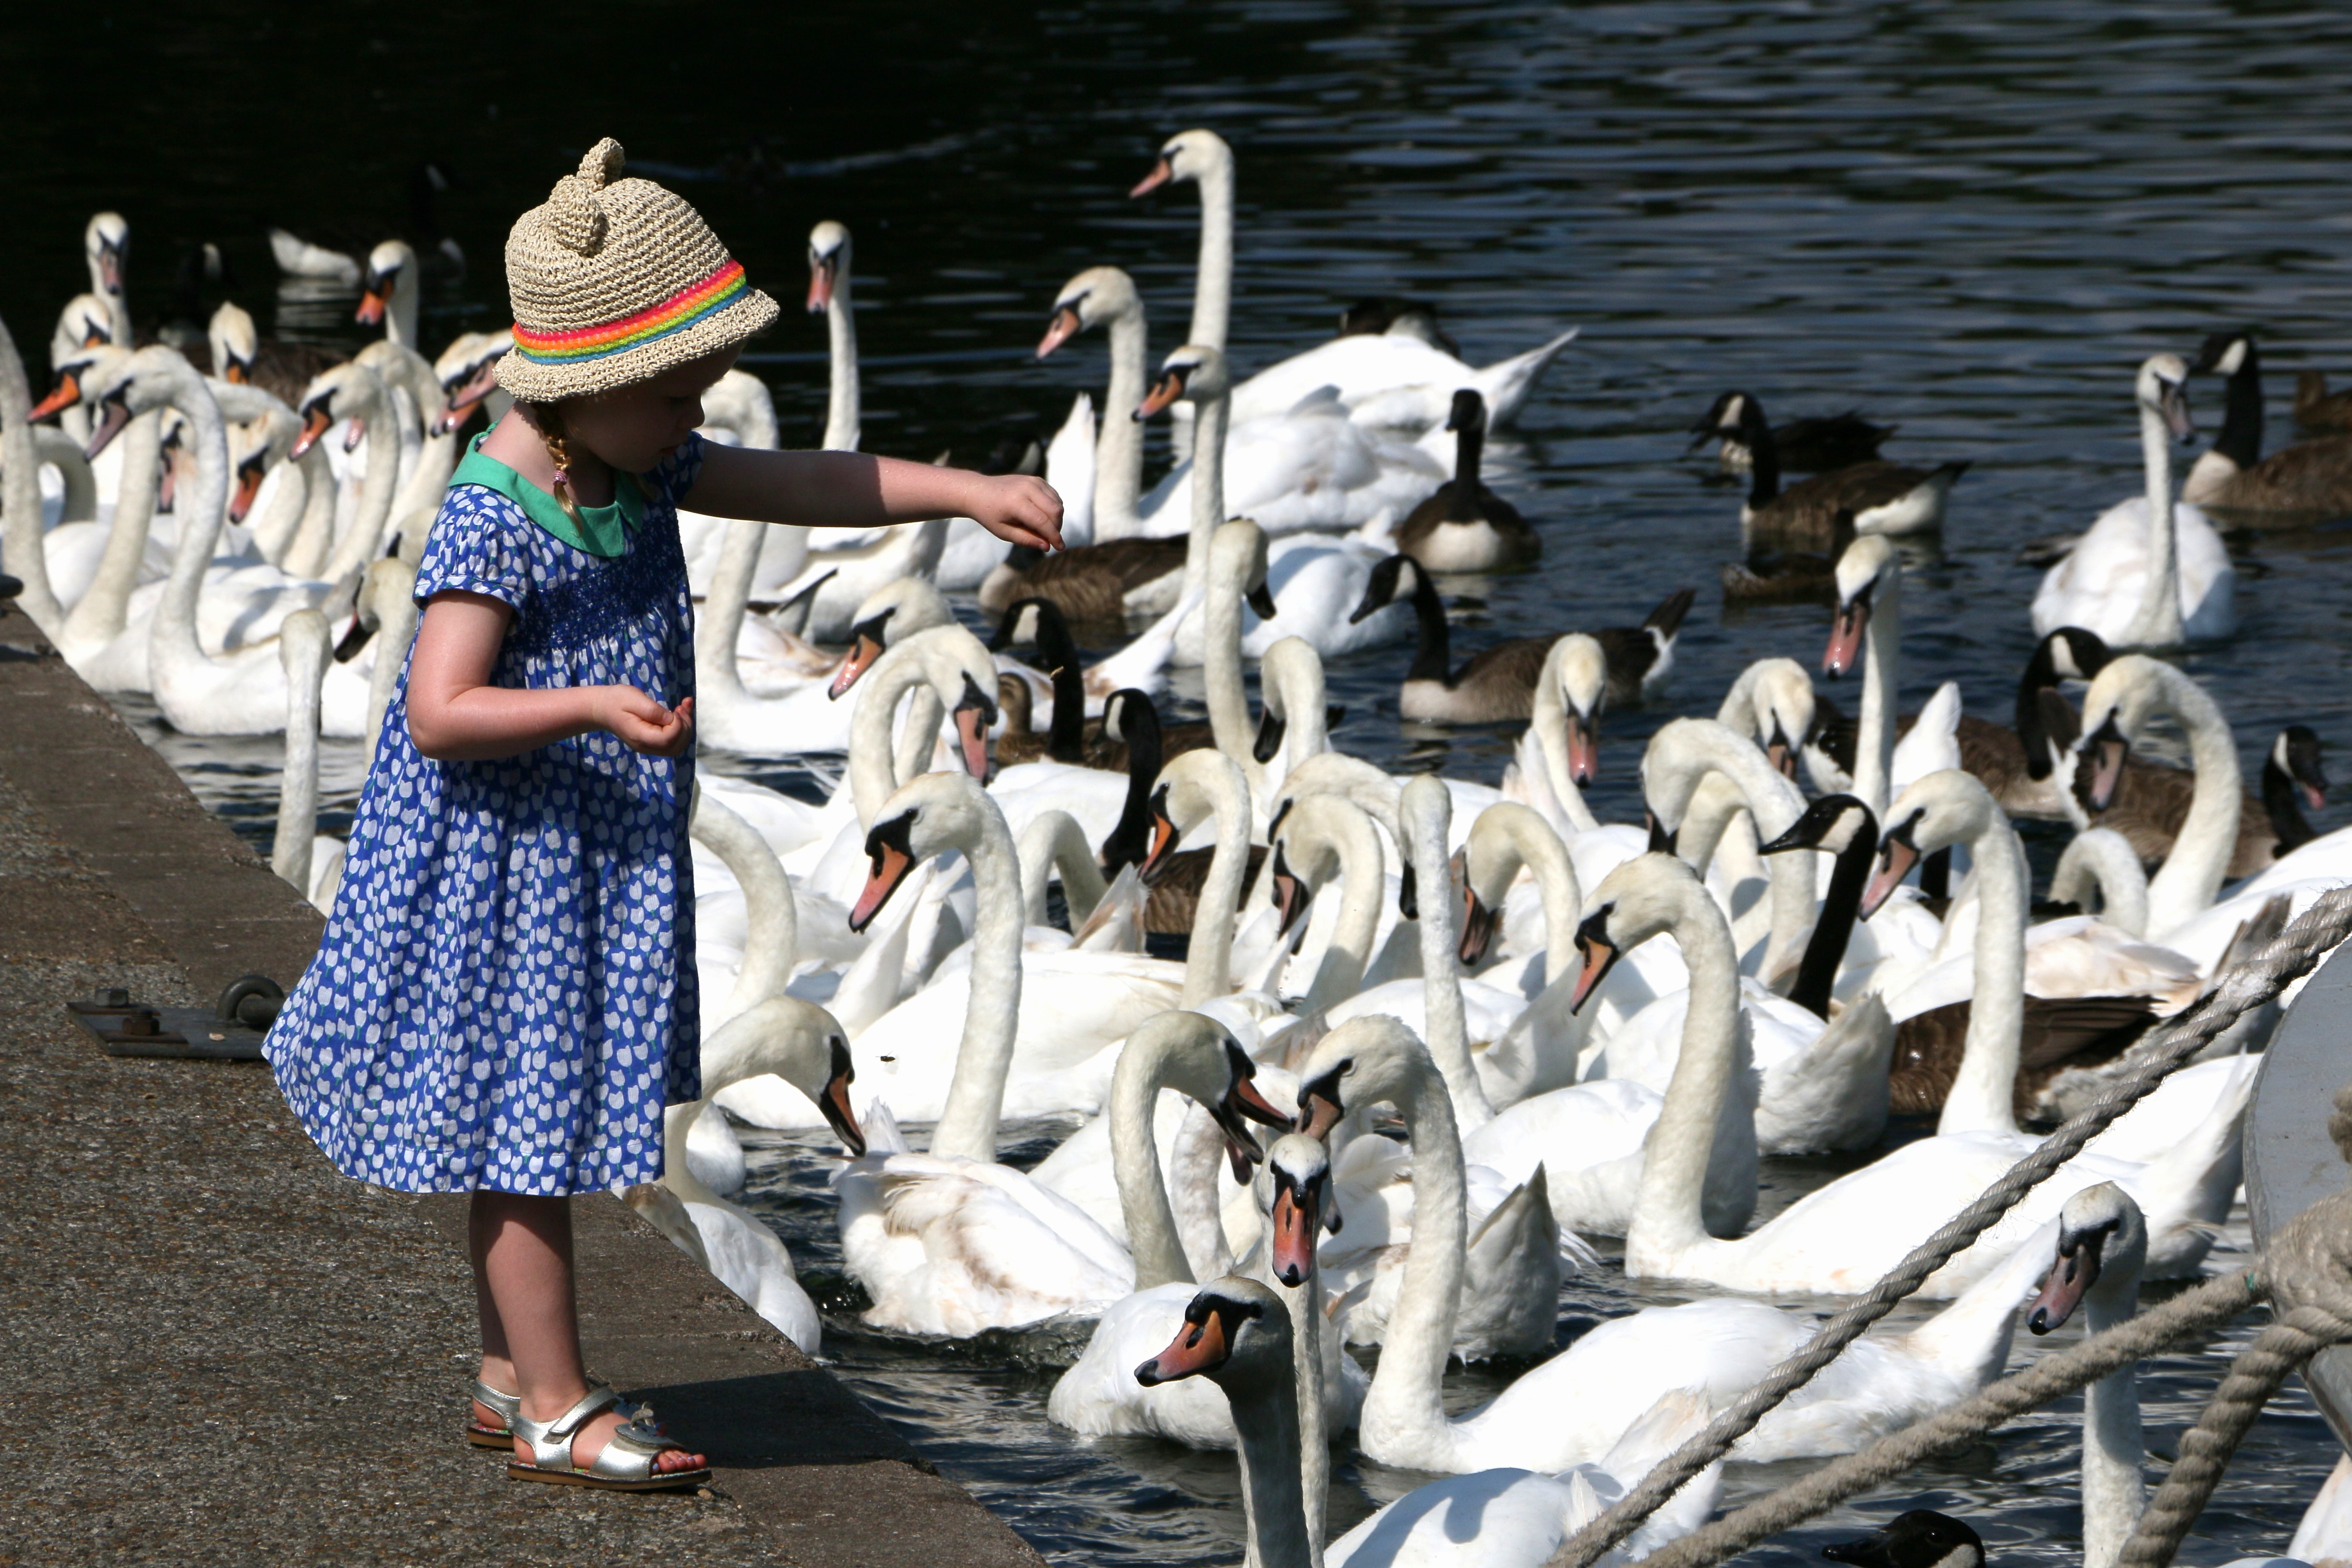 girl feeding flock of swan and geese on body of water during daytime